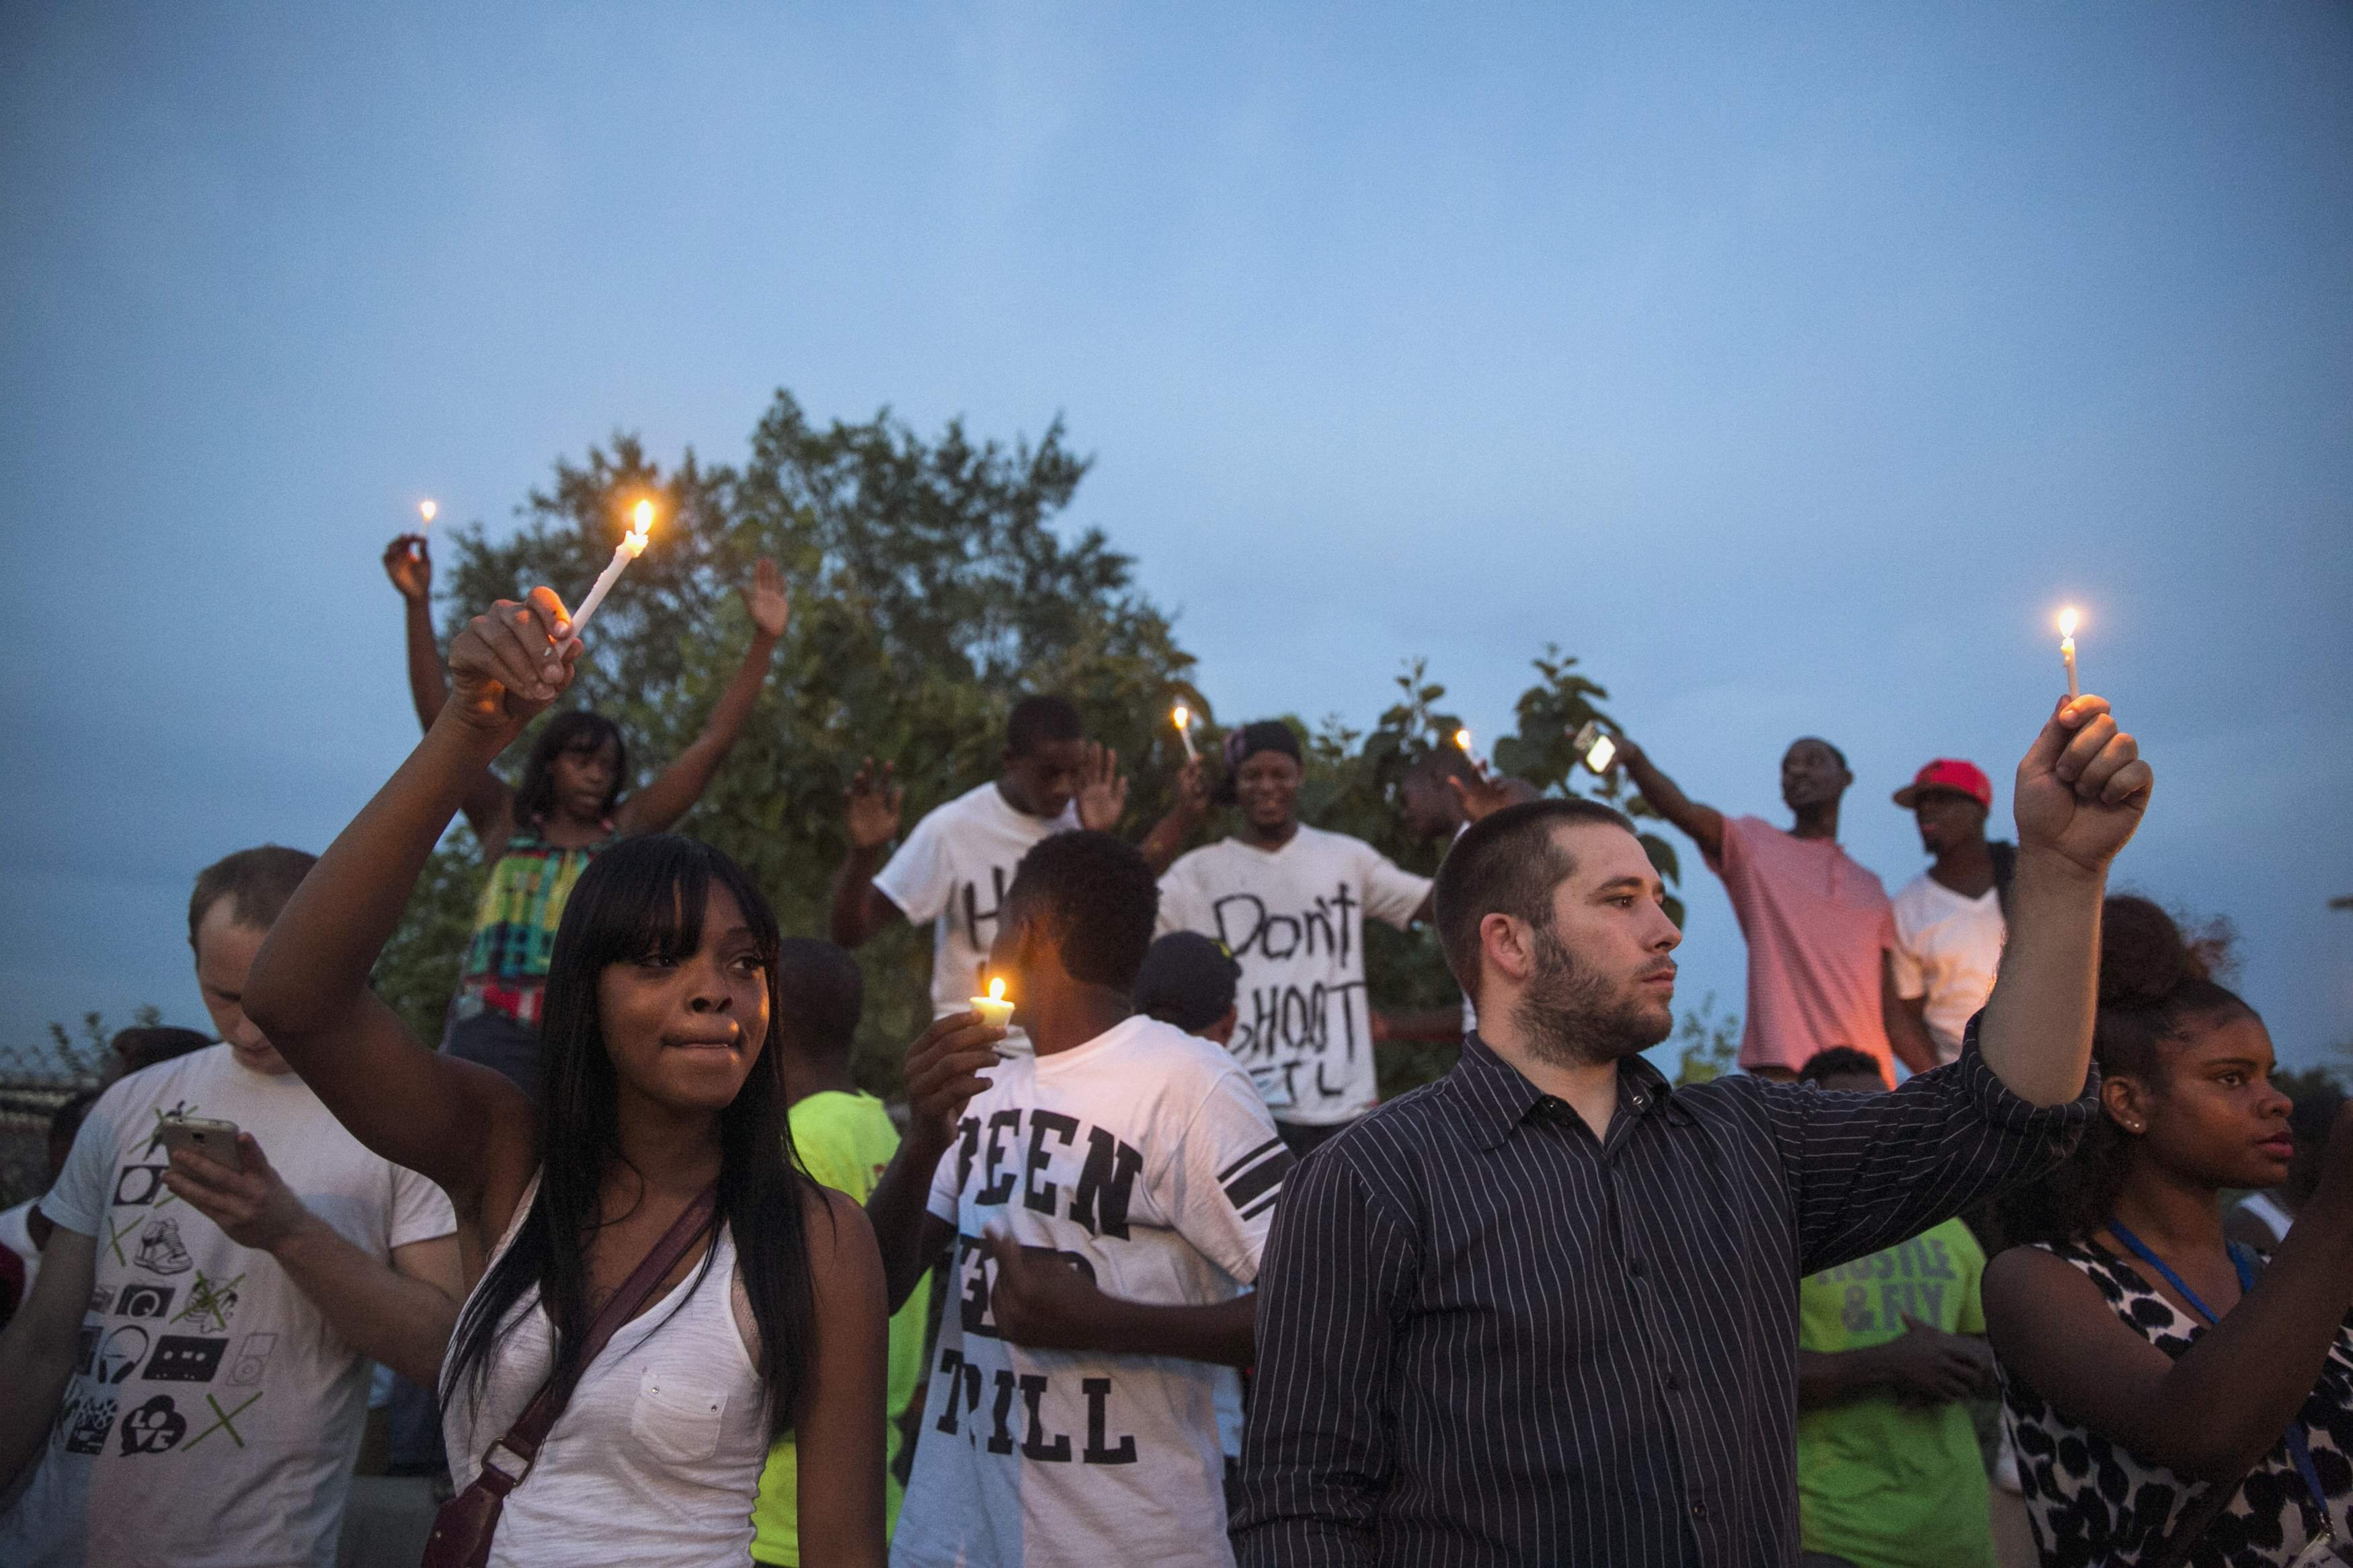 Protesters light candles, as communities react to the shooting of Michael Brown, in Ferguson, Mo., on Aug. 14, 2014